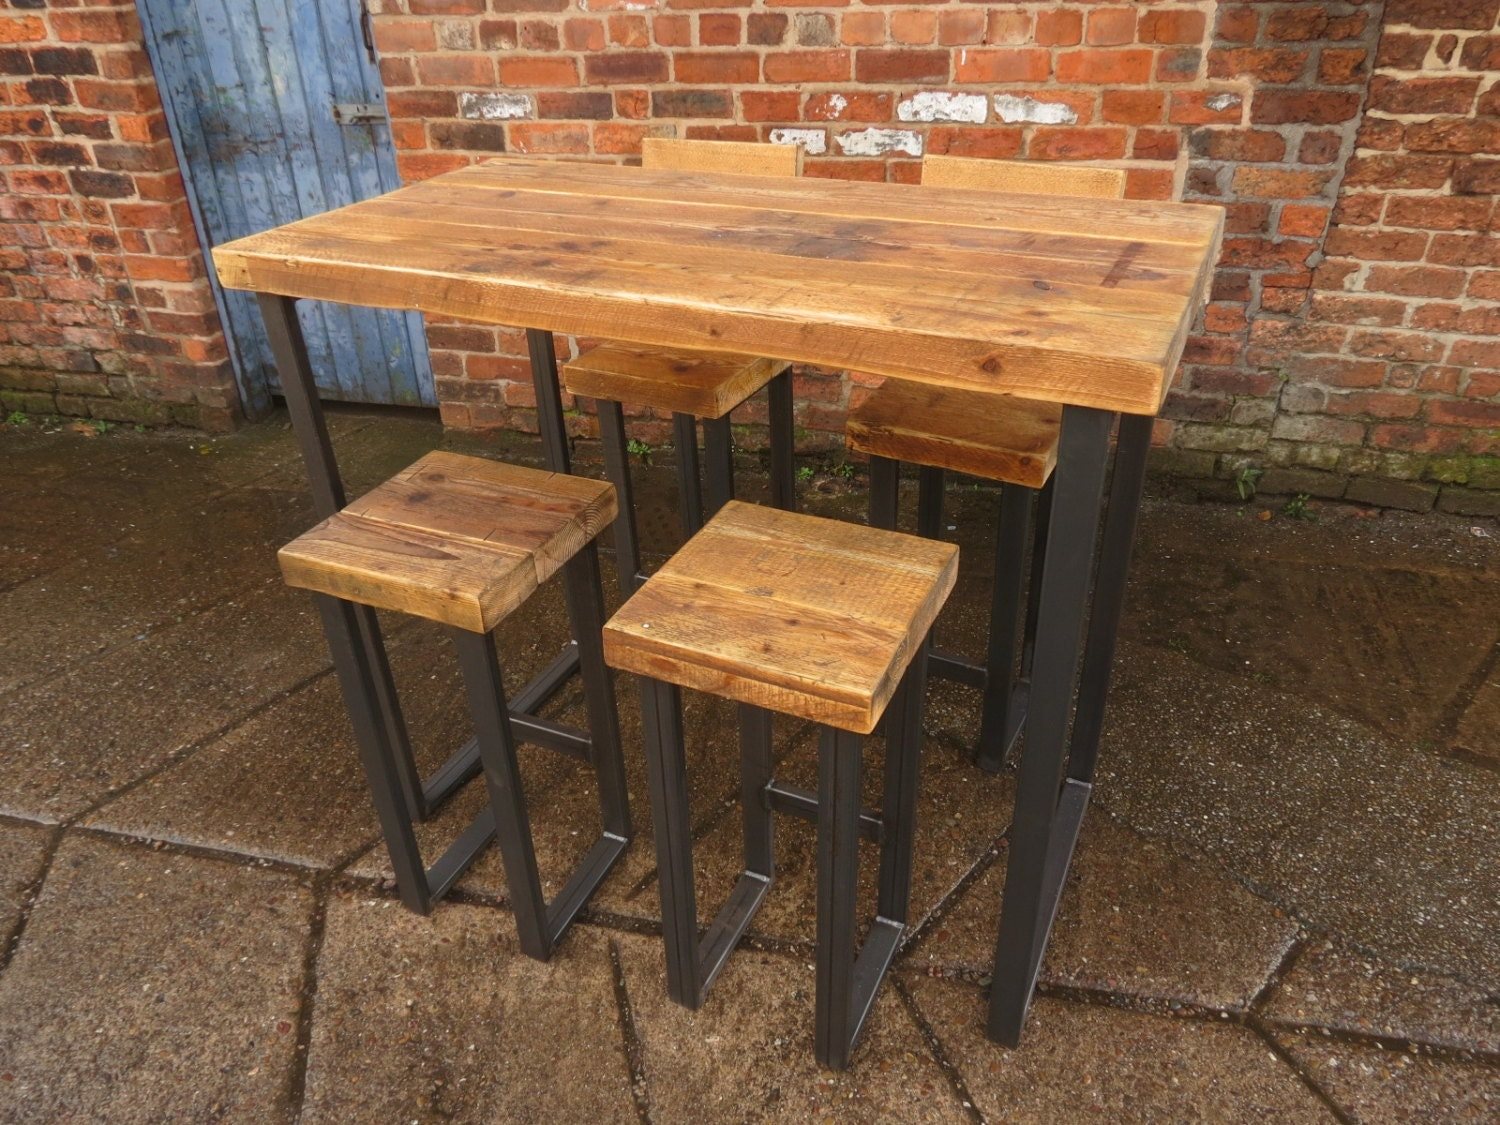 Reclaimed industrial 4 seater chic tall poseur table wood for Table haute industrielle